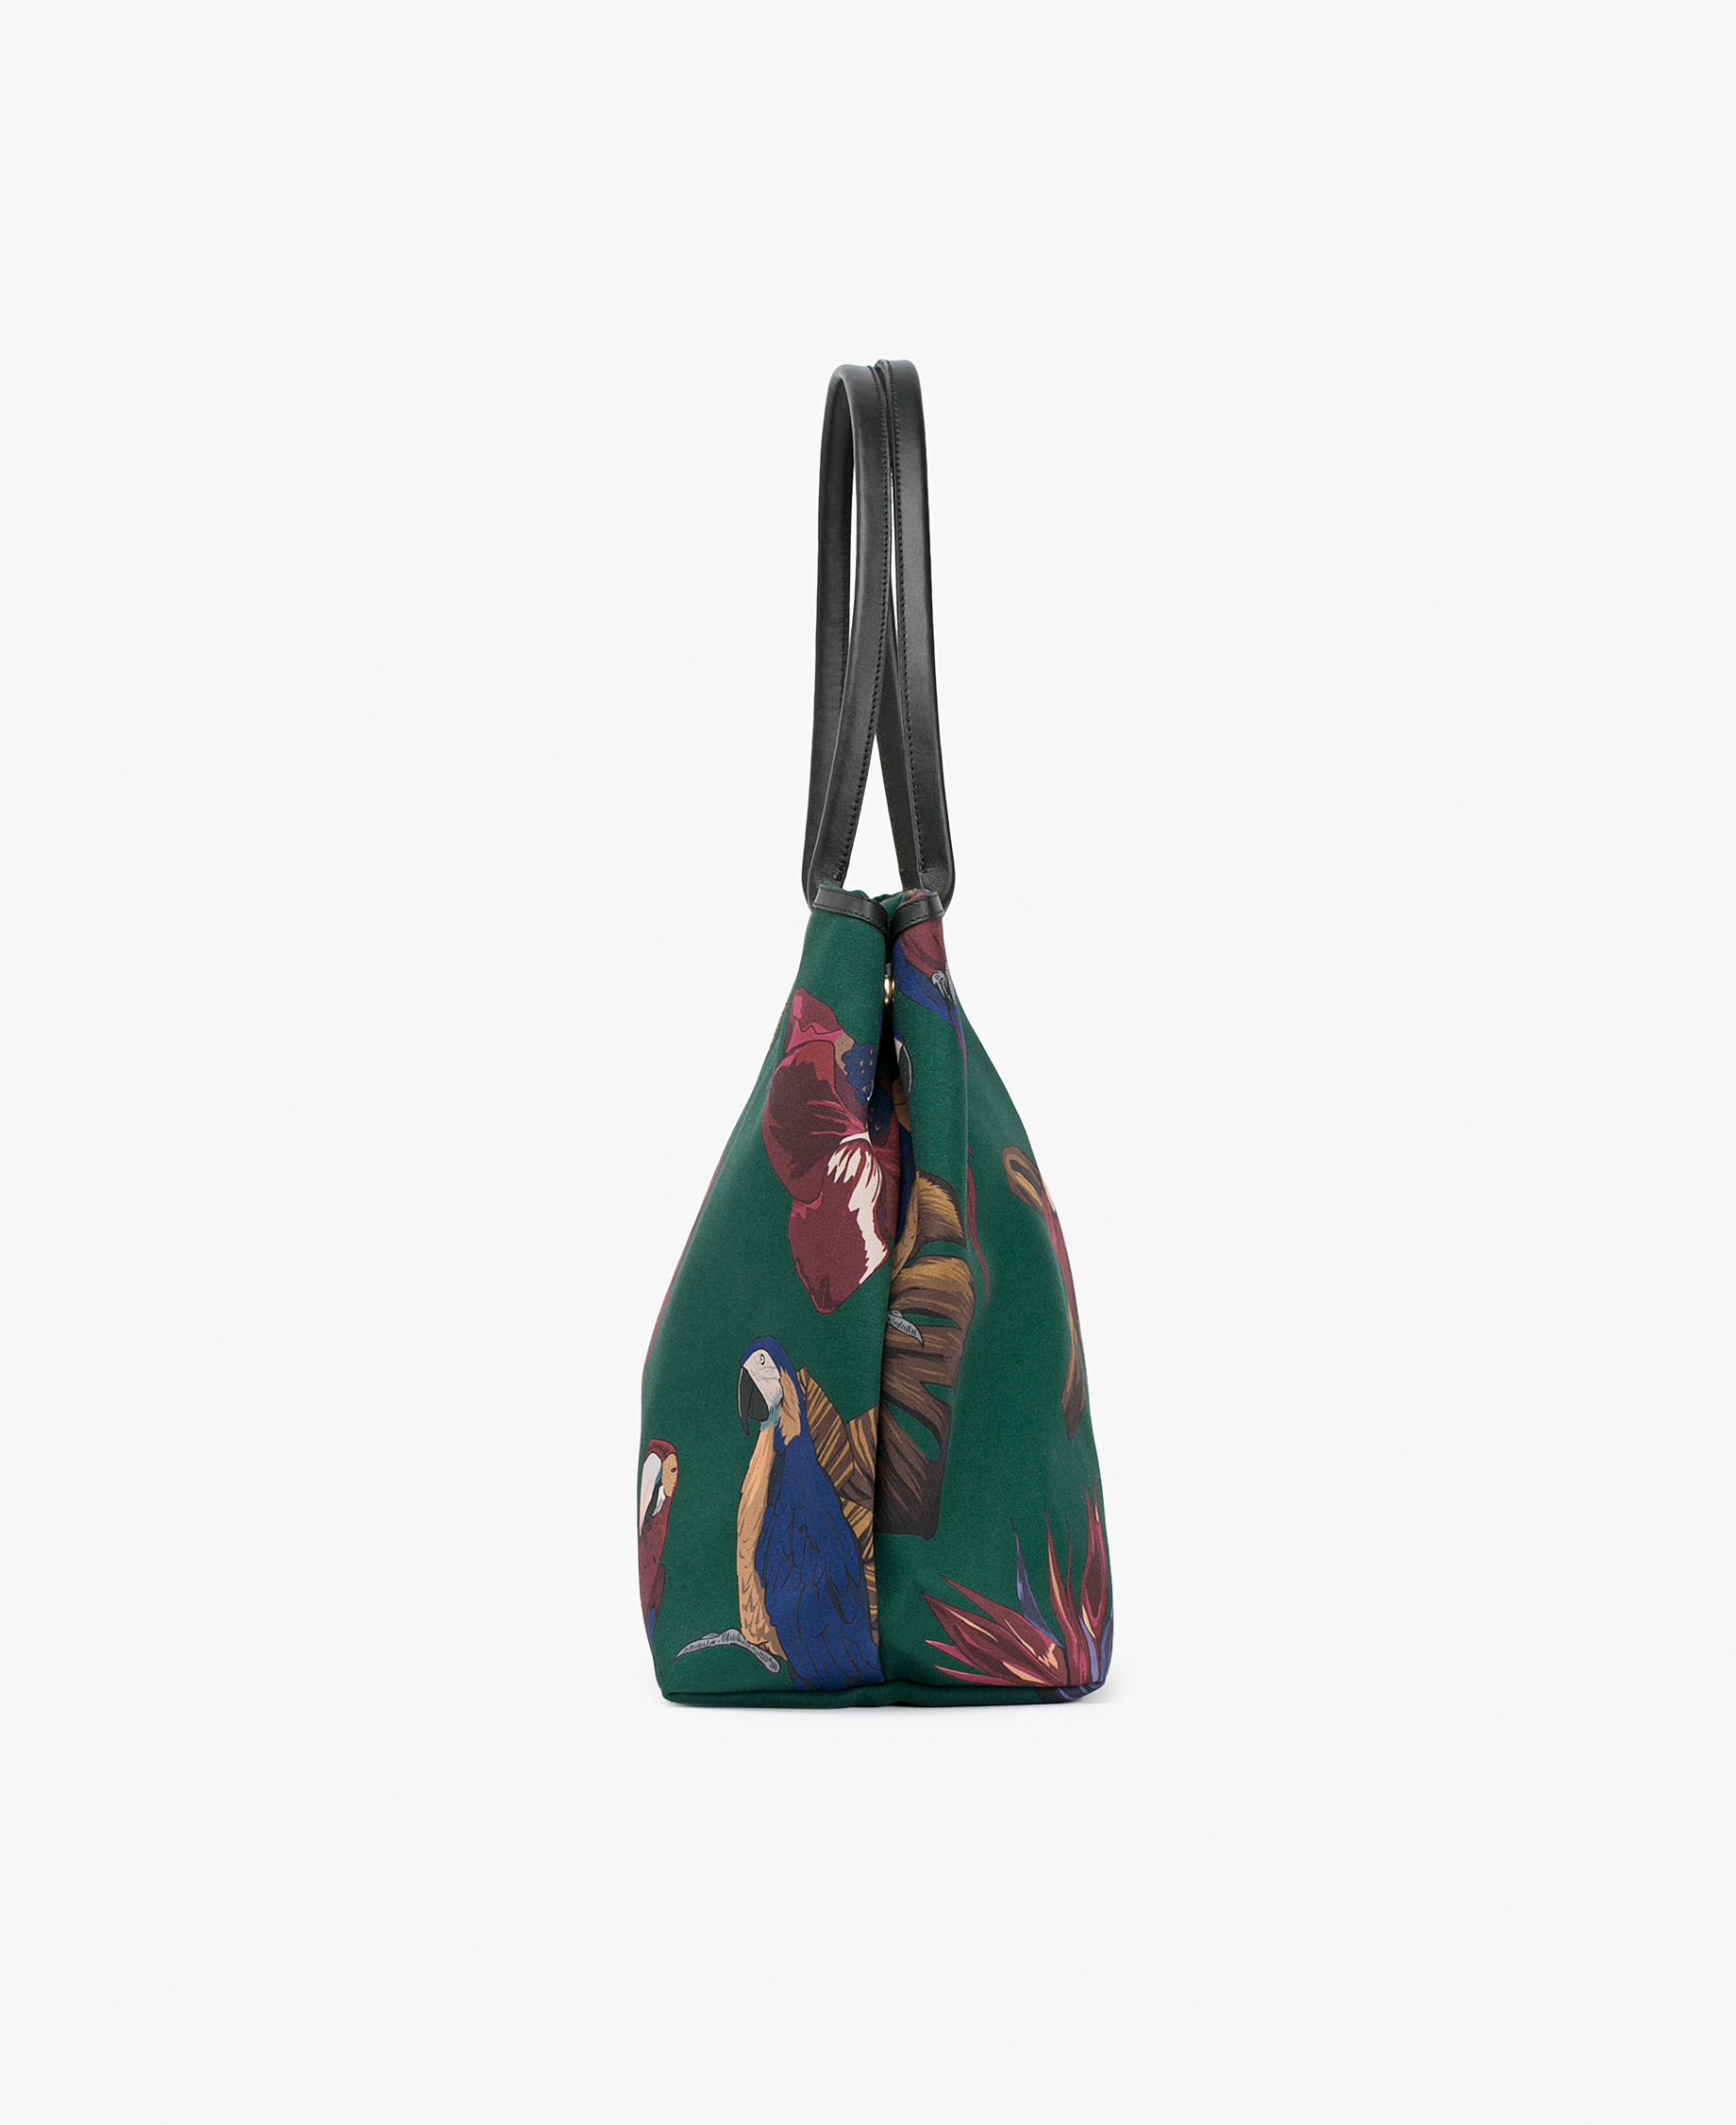 green tote bag with parrots